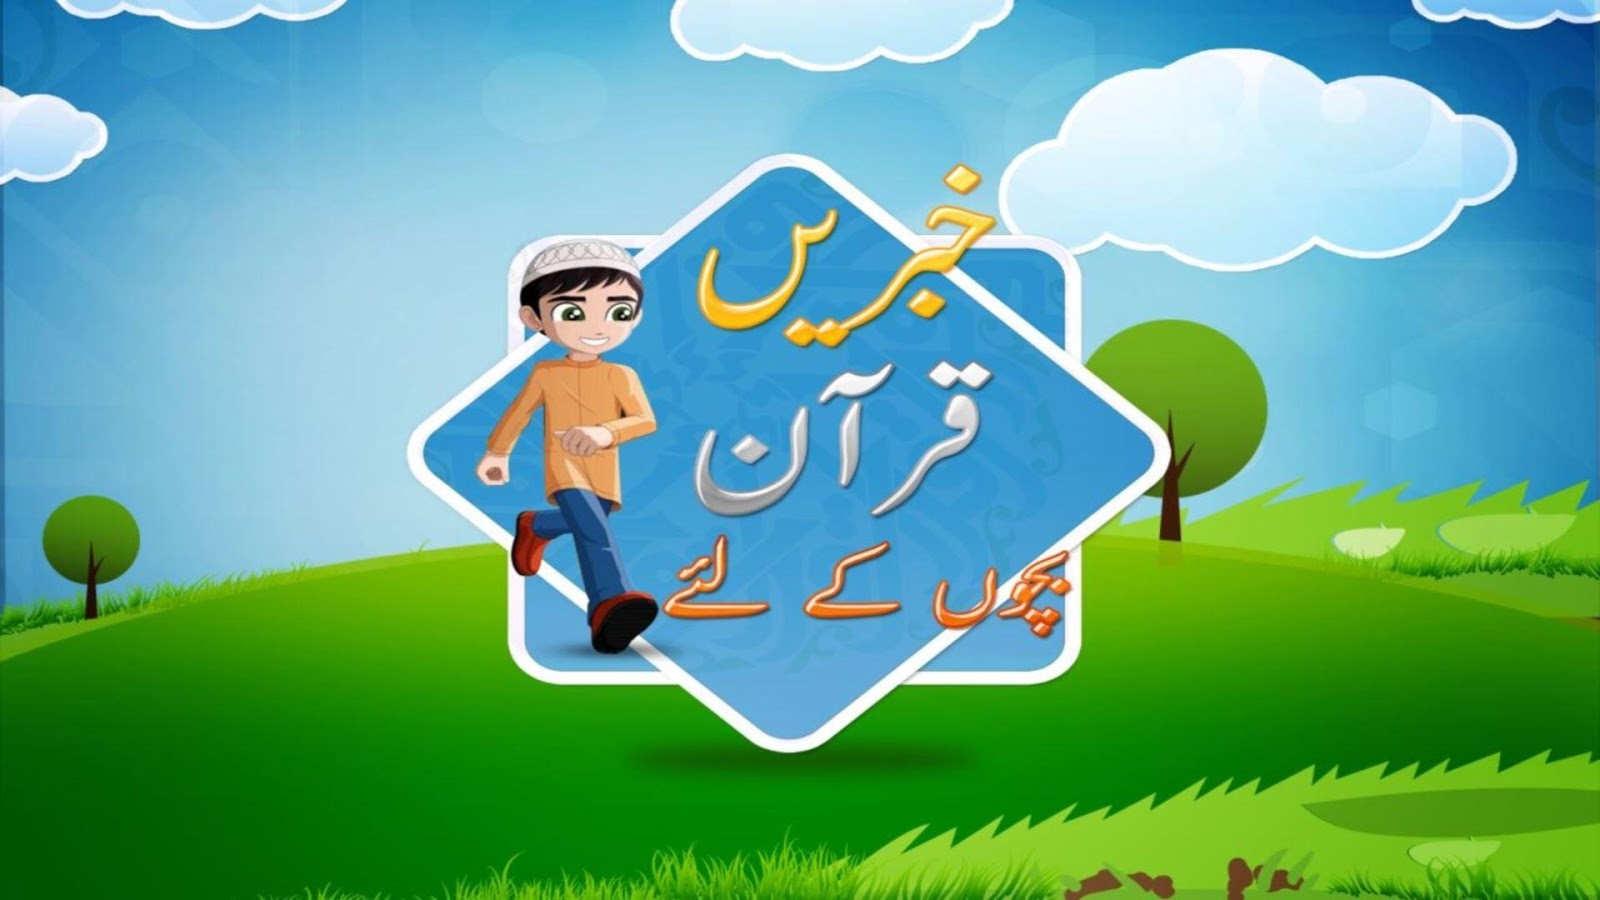 Quran Stories for Kids Urdu 1 5 0 APK Download - Android